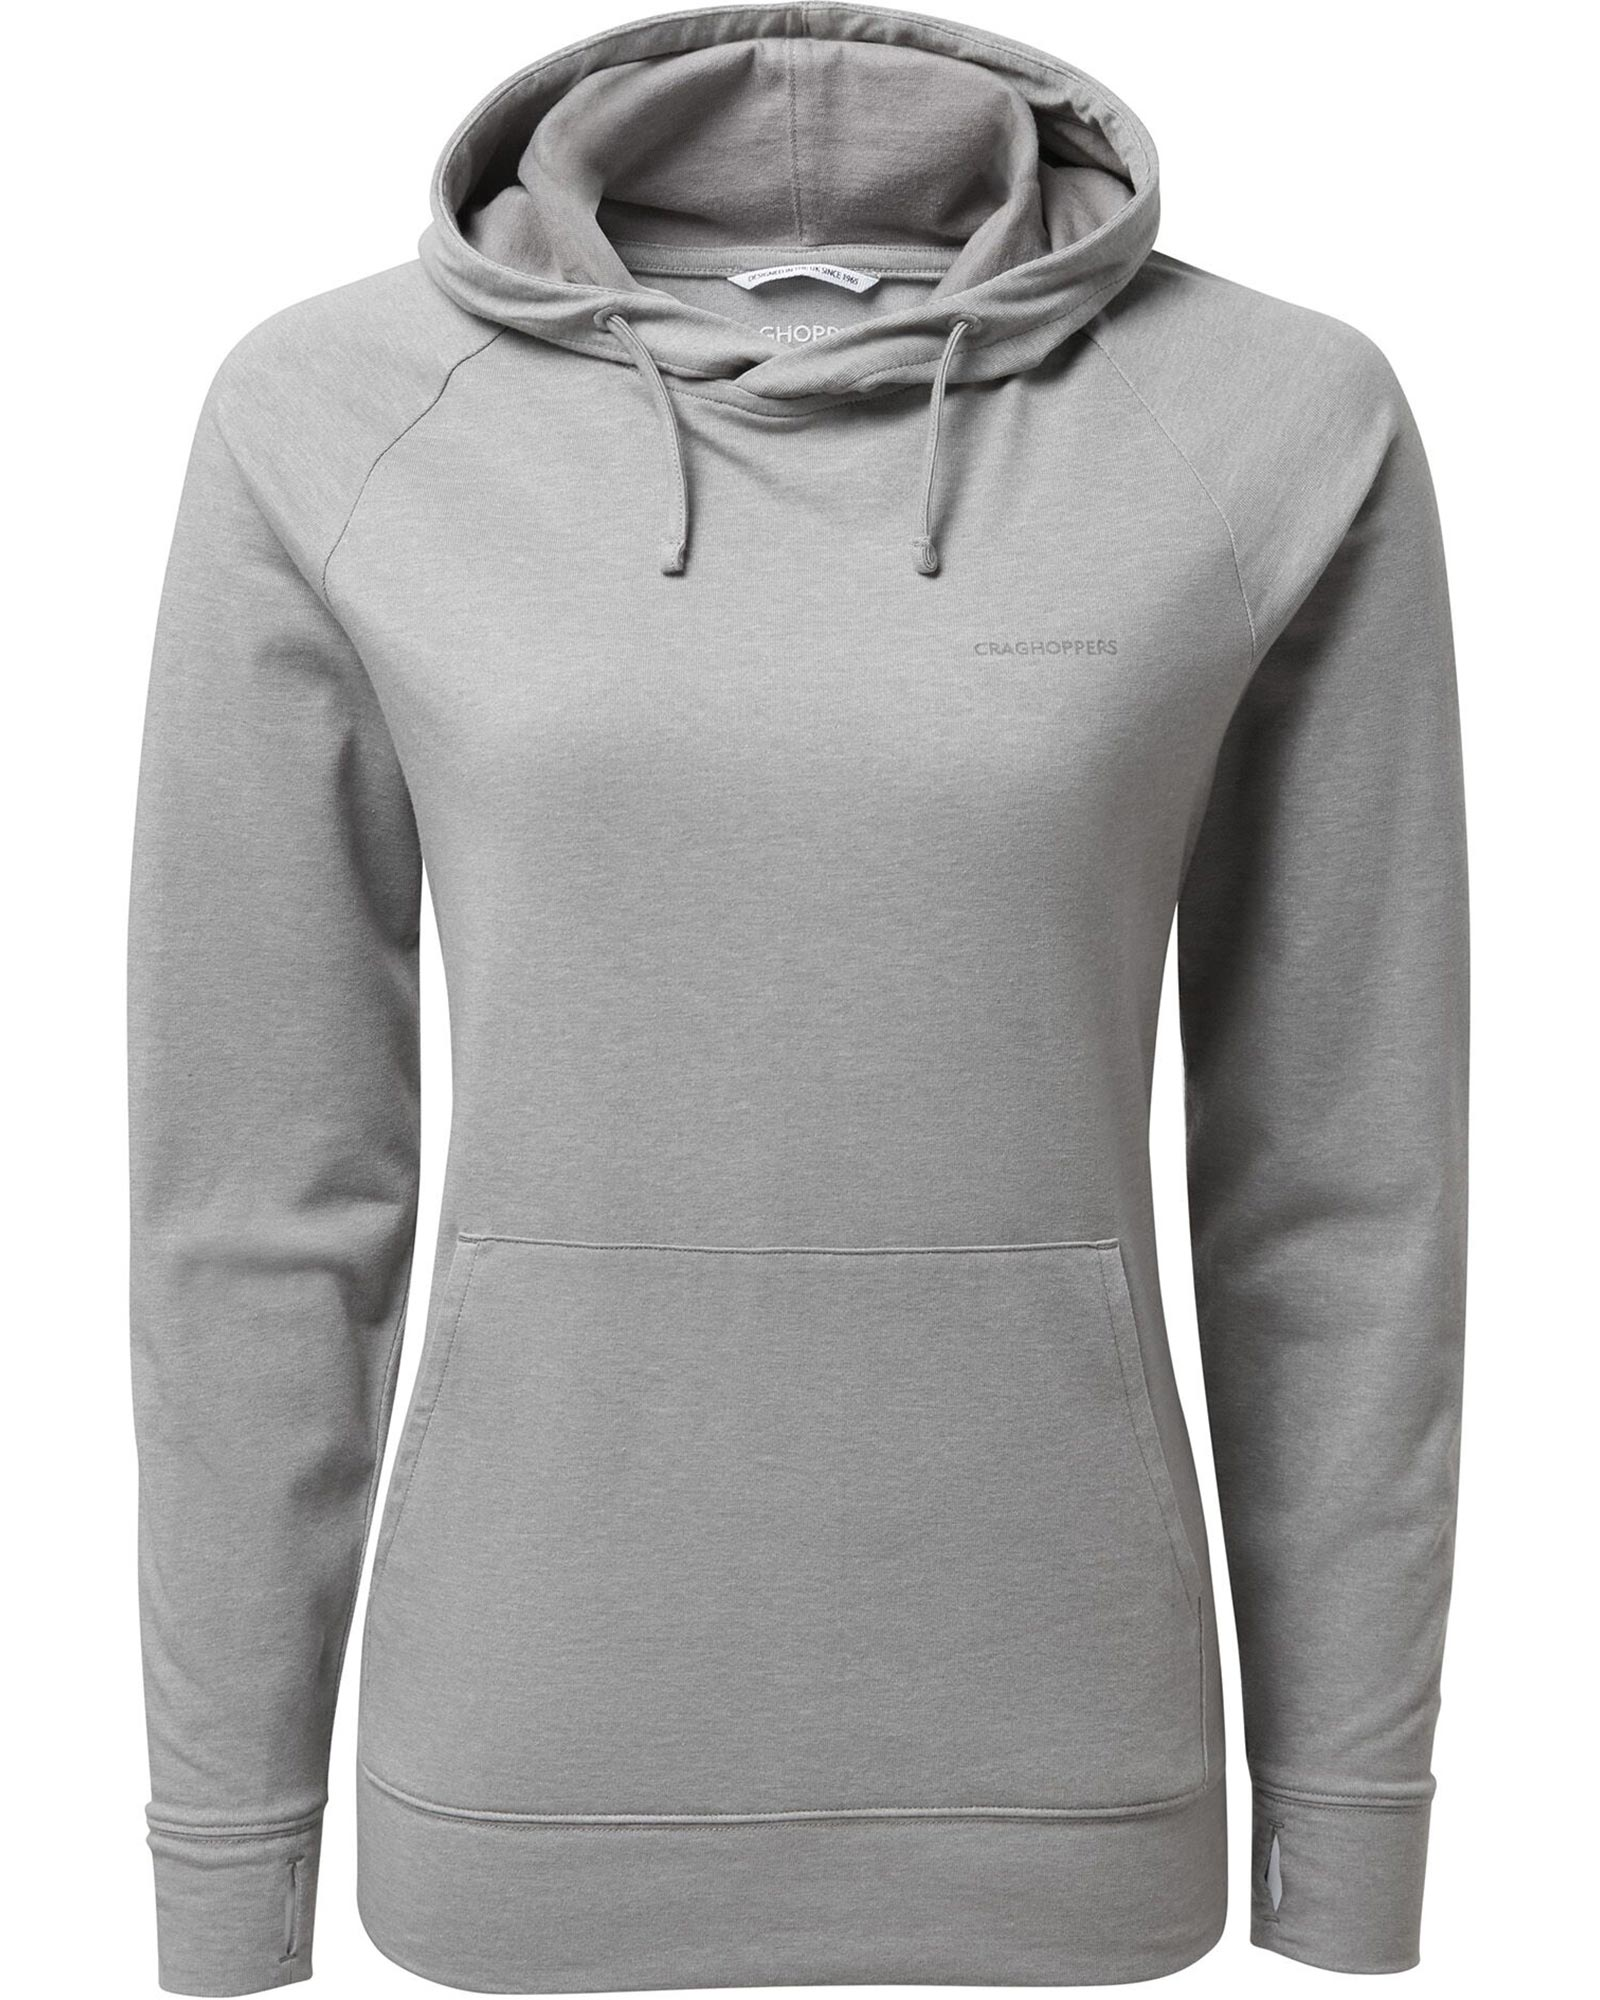 Craghoppers Womens Nosilife Alandra Hooded Top